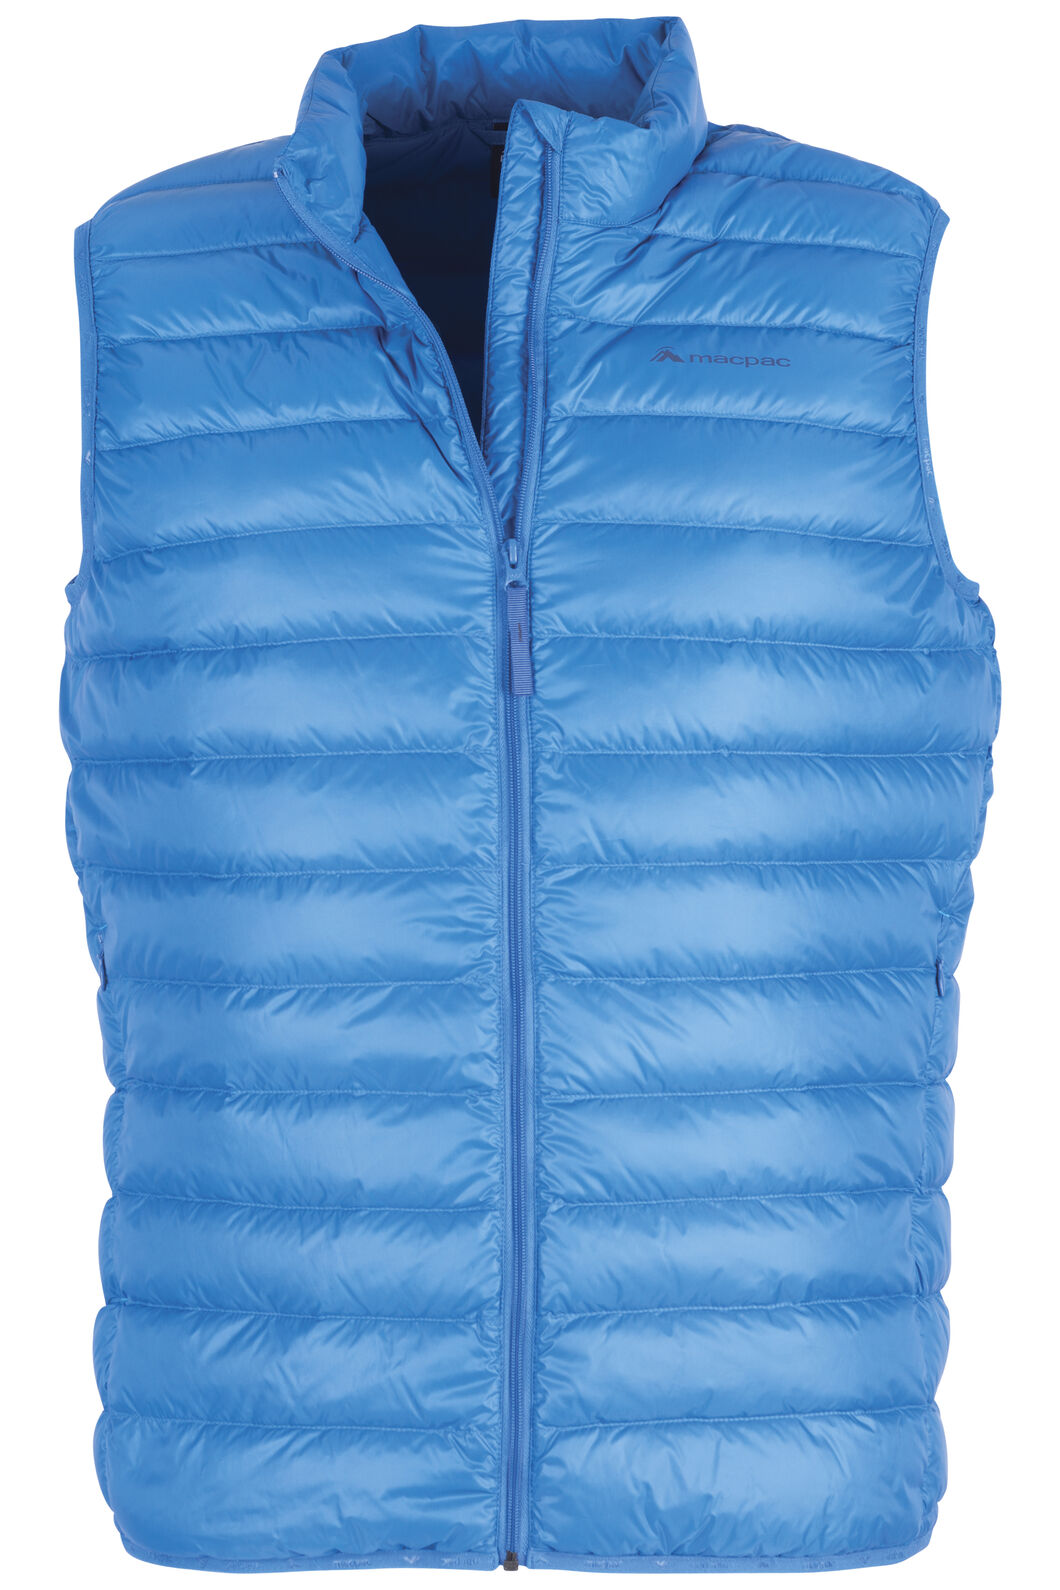 Macpac Uber Light Down Vest - Men's, Imperial Blue, hi-res